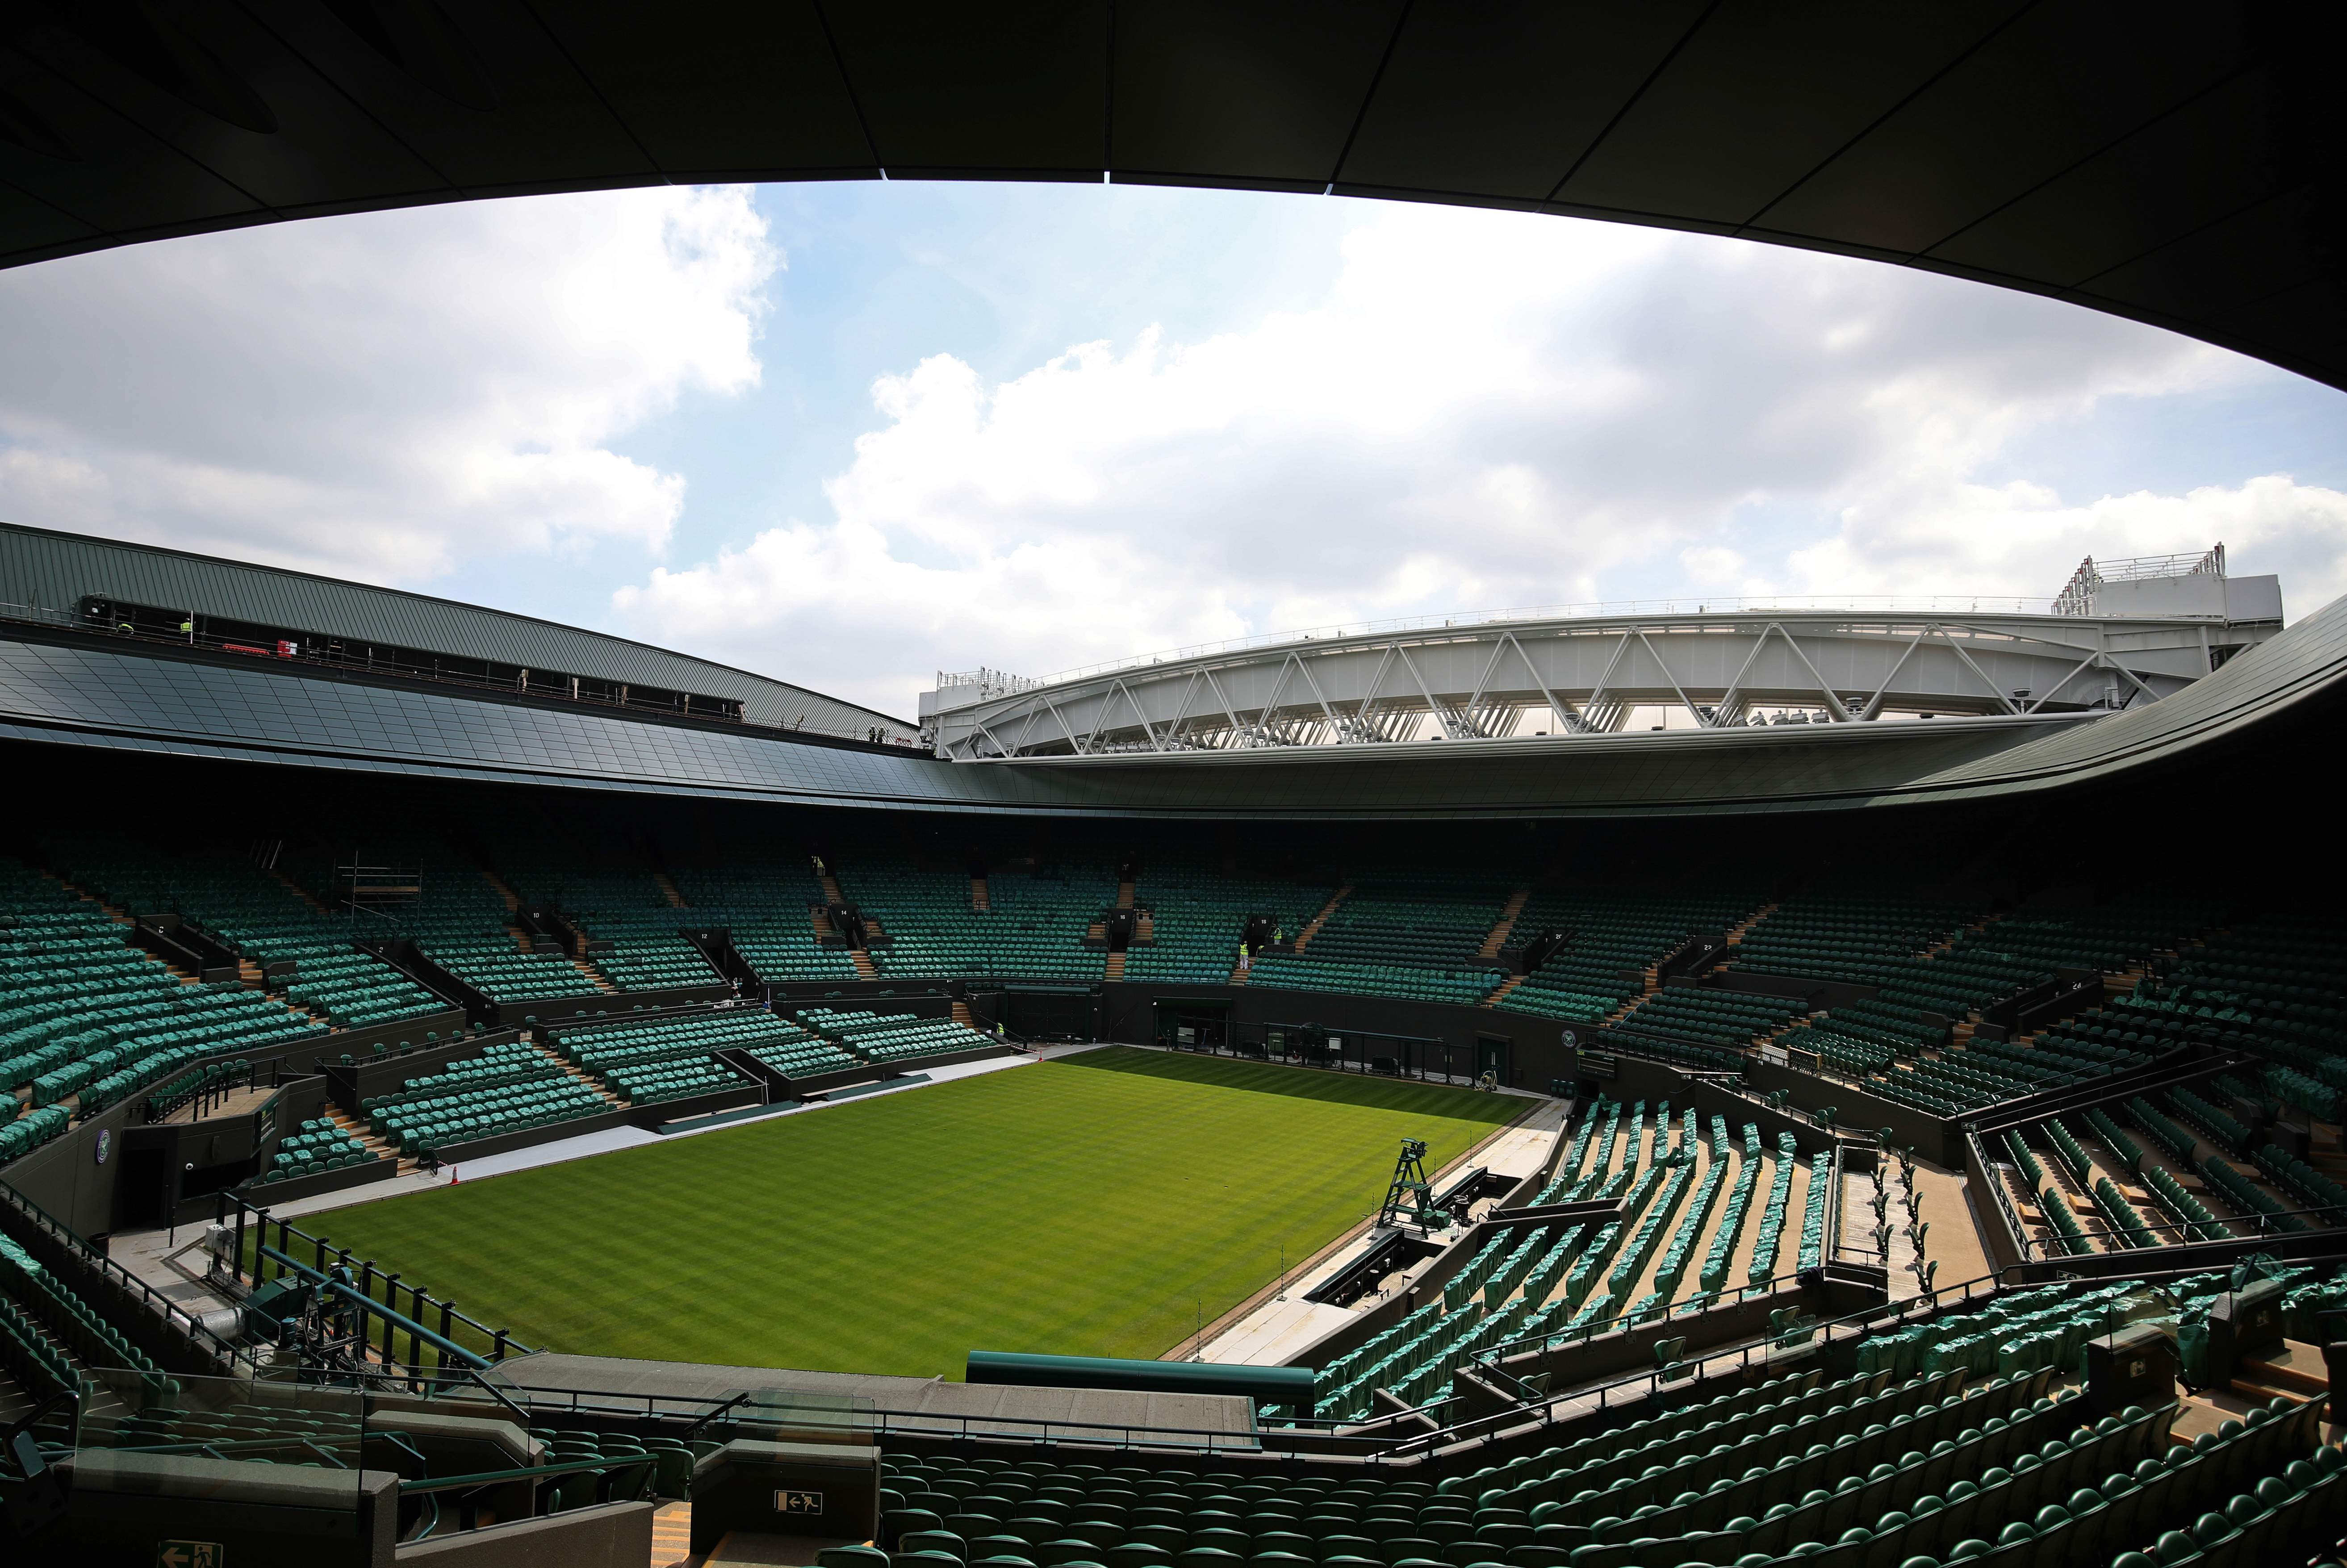 Court One with its new roof. Image: PA Images